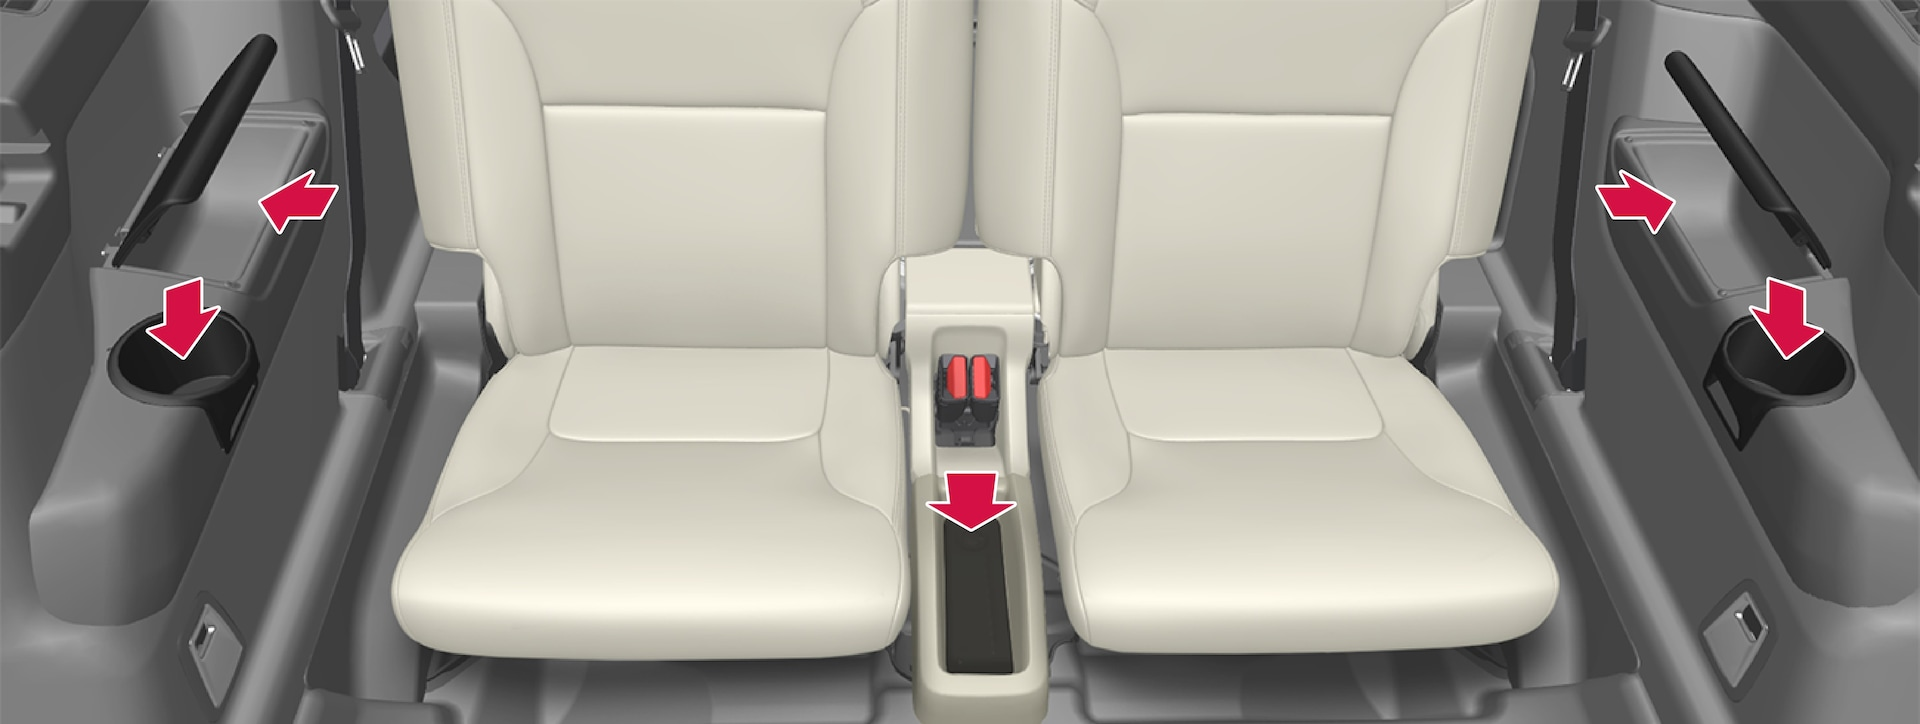 P5-1507–Interior–Overview 3rd seat row side